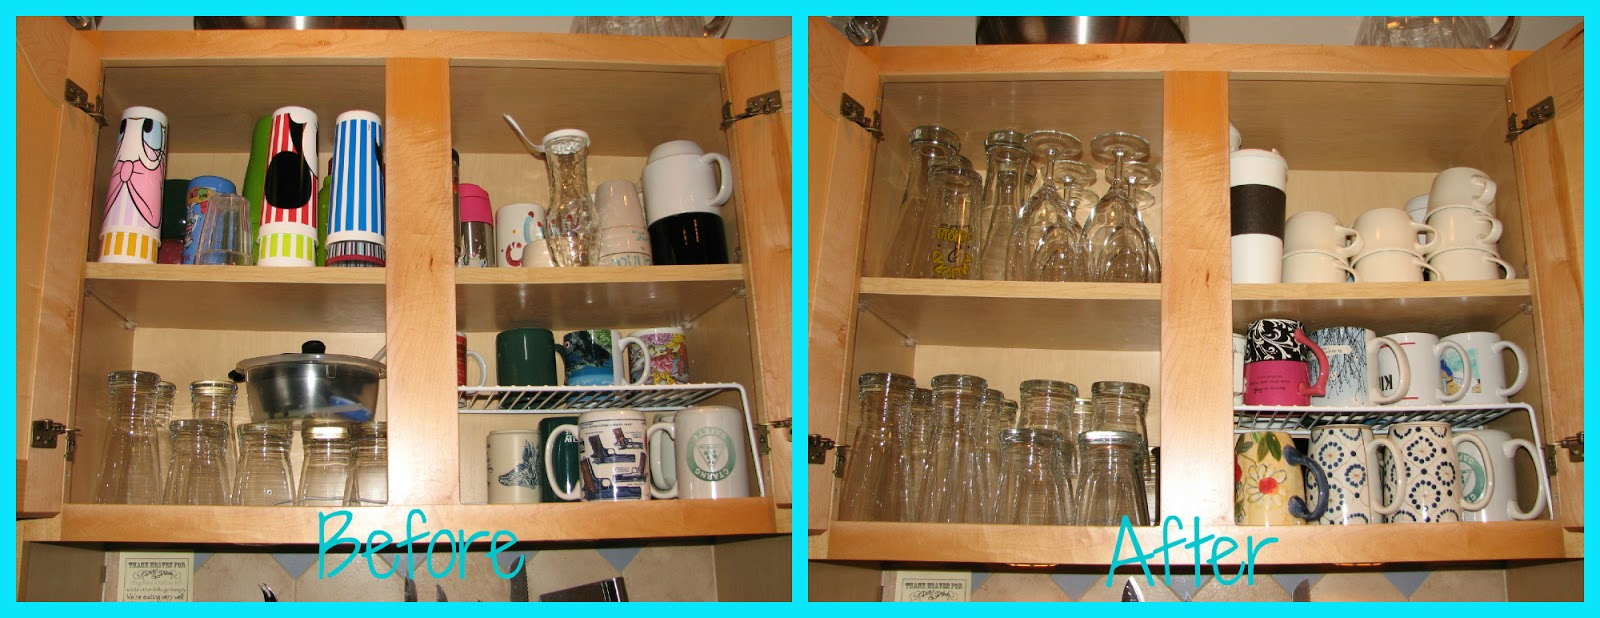 nice Rearranging Kitchen Cabinets #5: Rearranging Kitchen Cabinets Rooms .